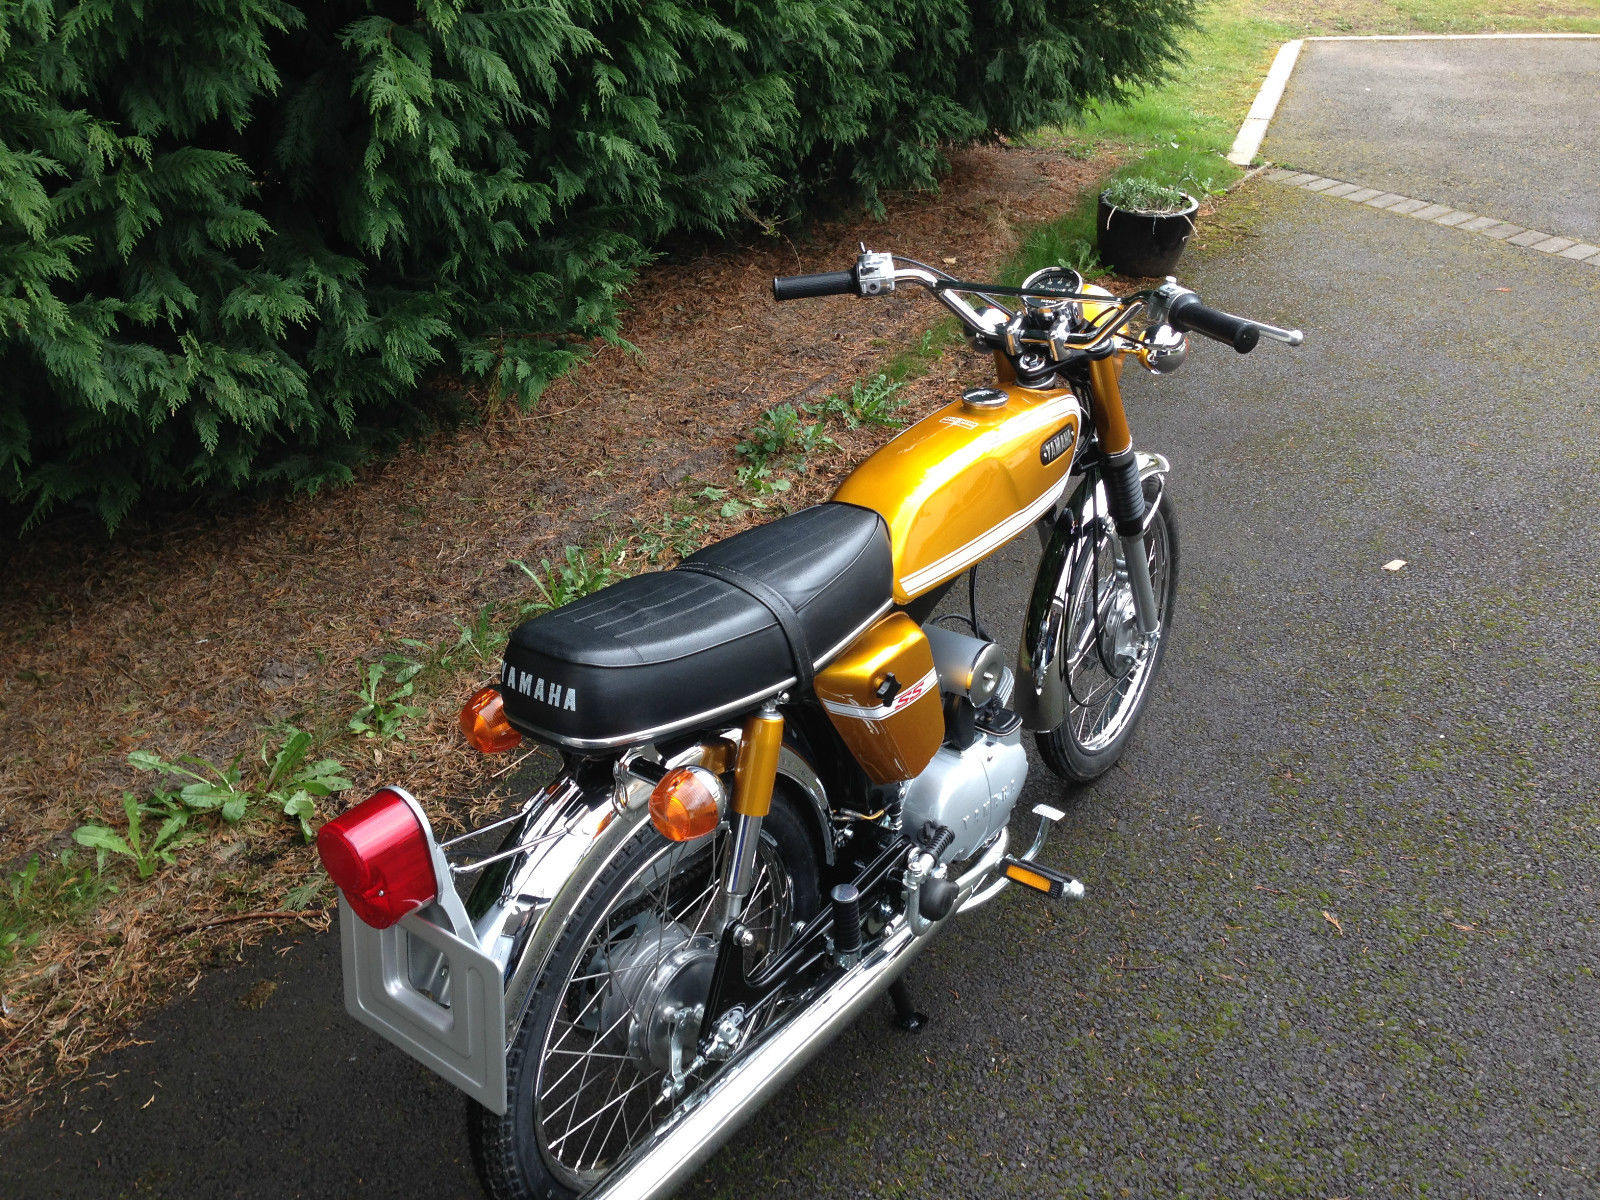 Yamaha SS50 - 1973 - Rear Light, Number Plate, Indicators and Seat.